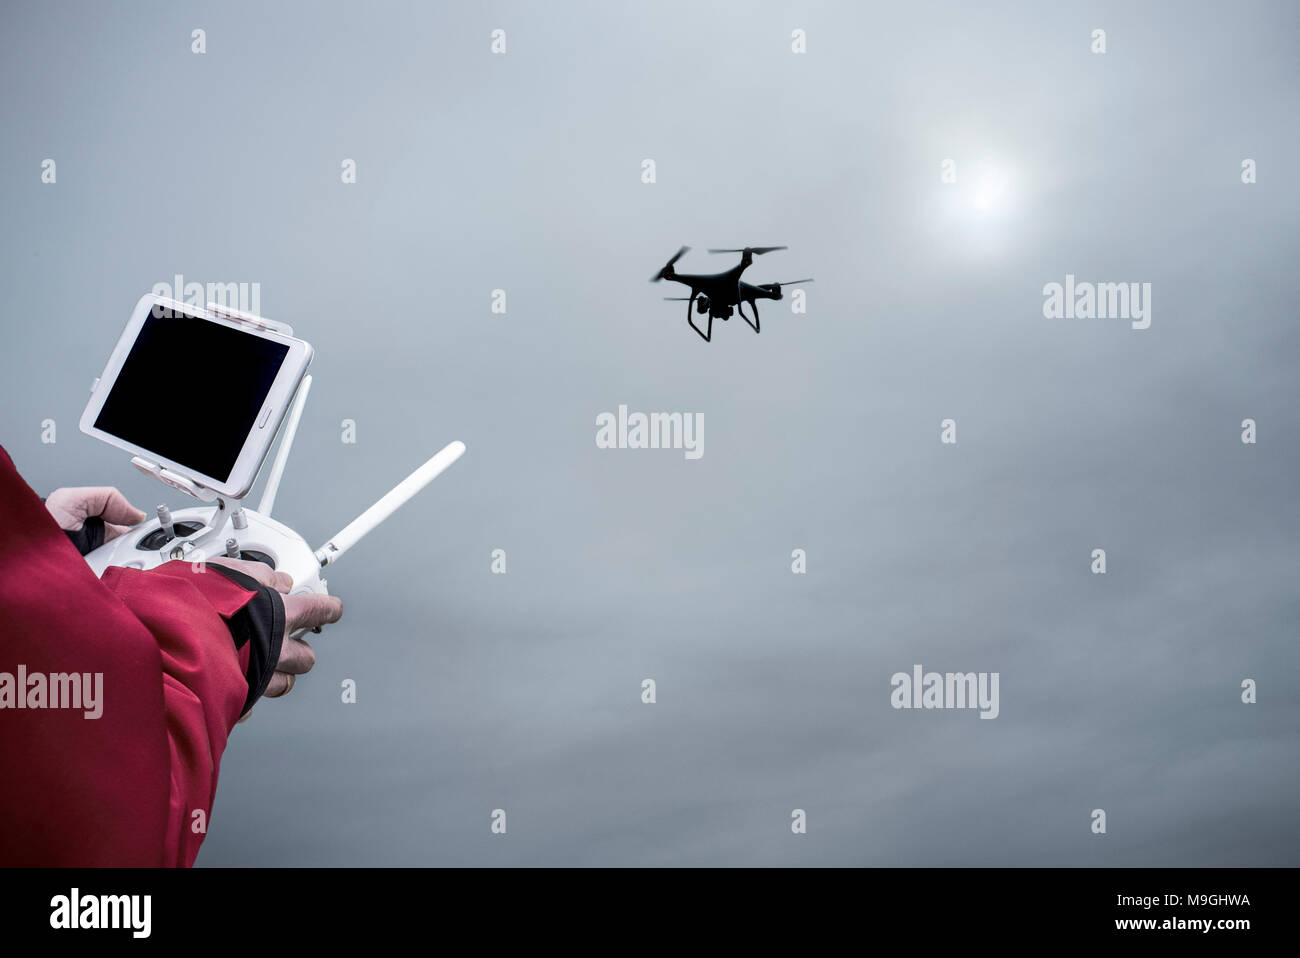 Pilot flying drone with FPV or First Person View device on remote controller. Approaching maneuver - Stock Image